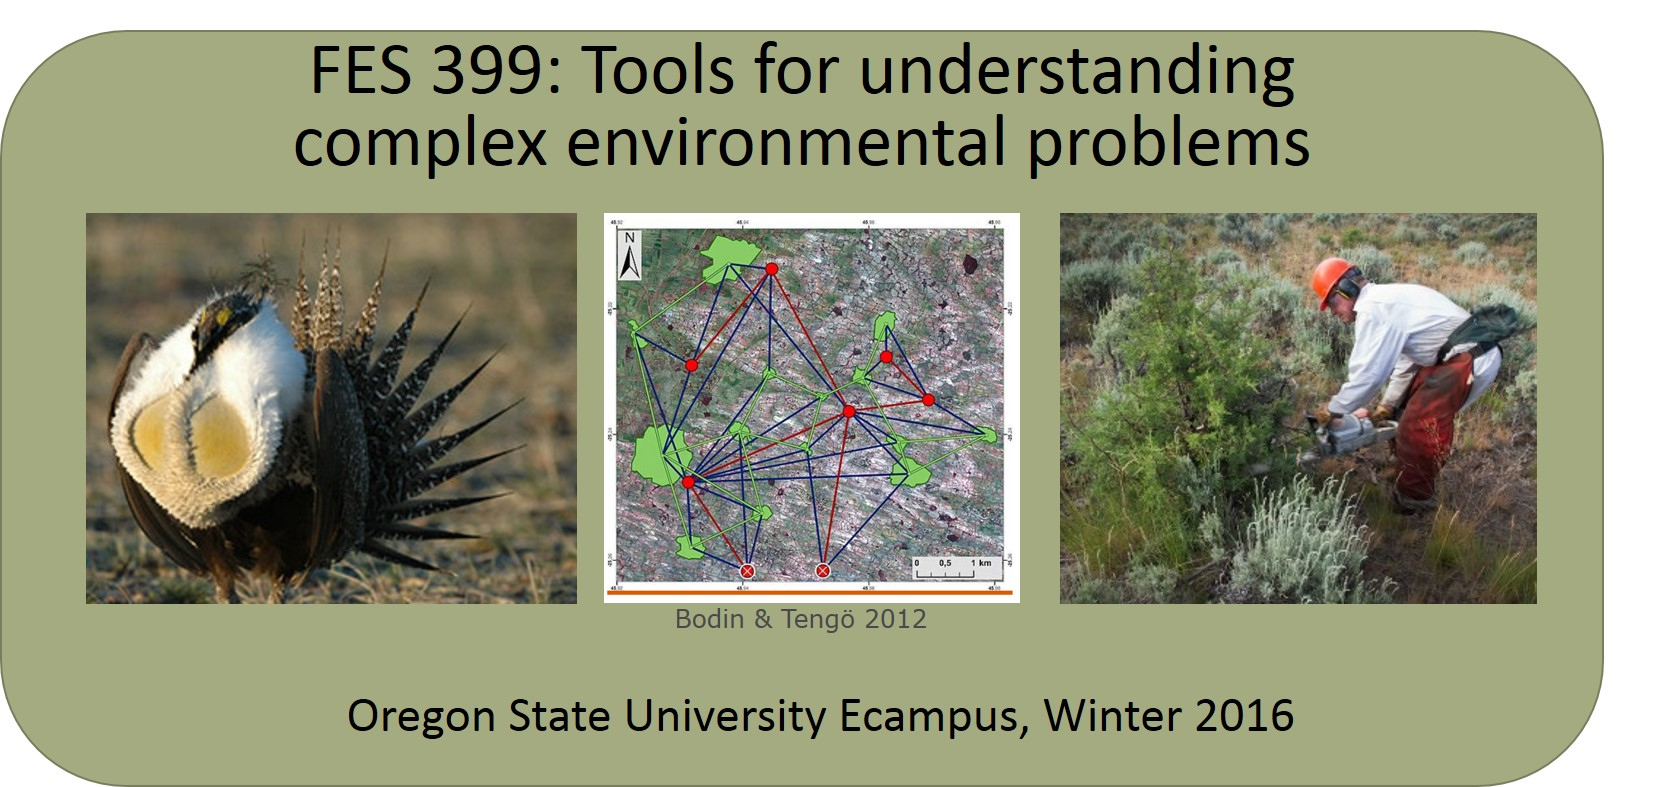 DESIGNED AND TAUGHT FES 399 FOR OREGON STATE UNIVERSITY ECAMPUS